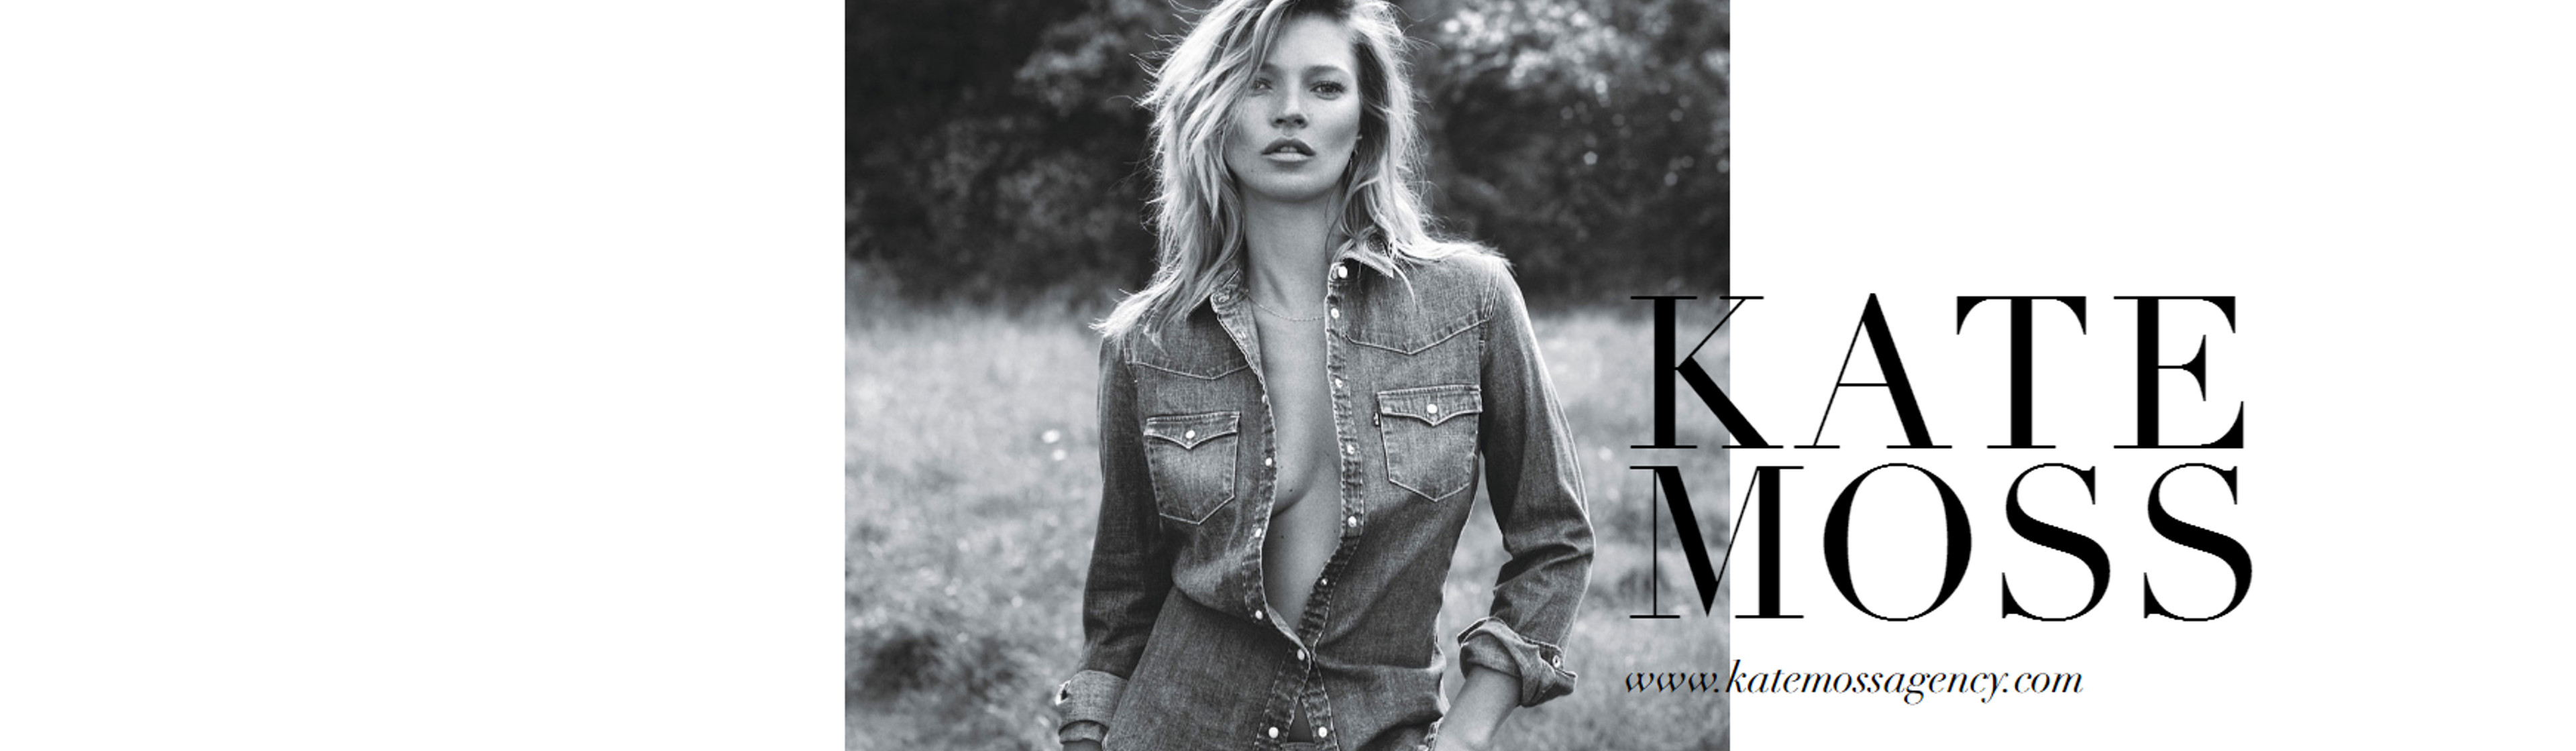 Kate Moss: From Supermodel to Talent Agent